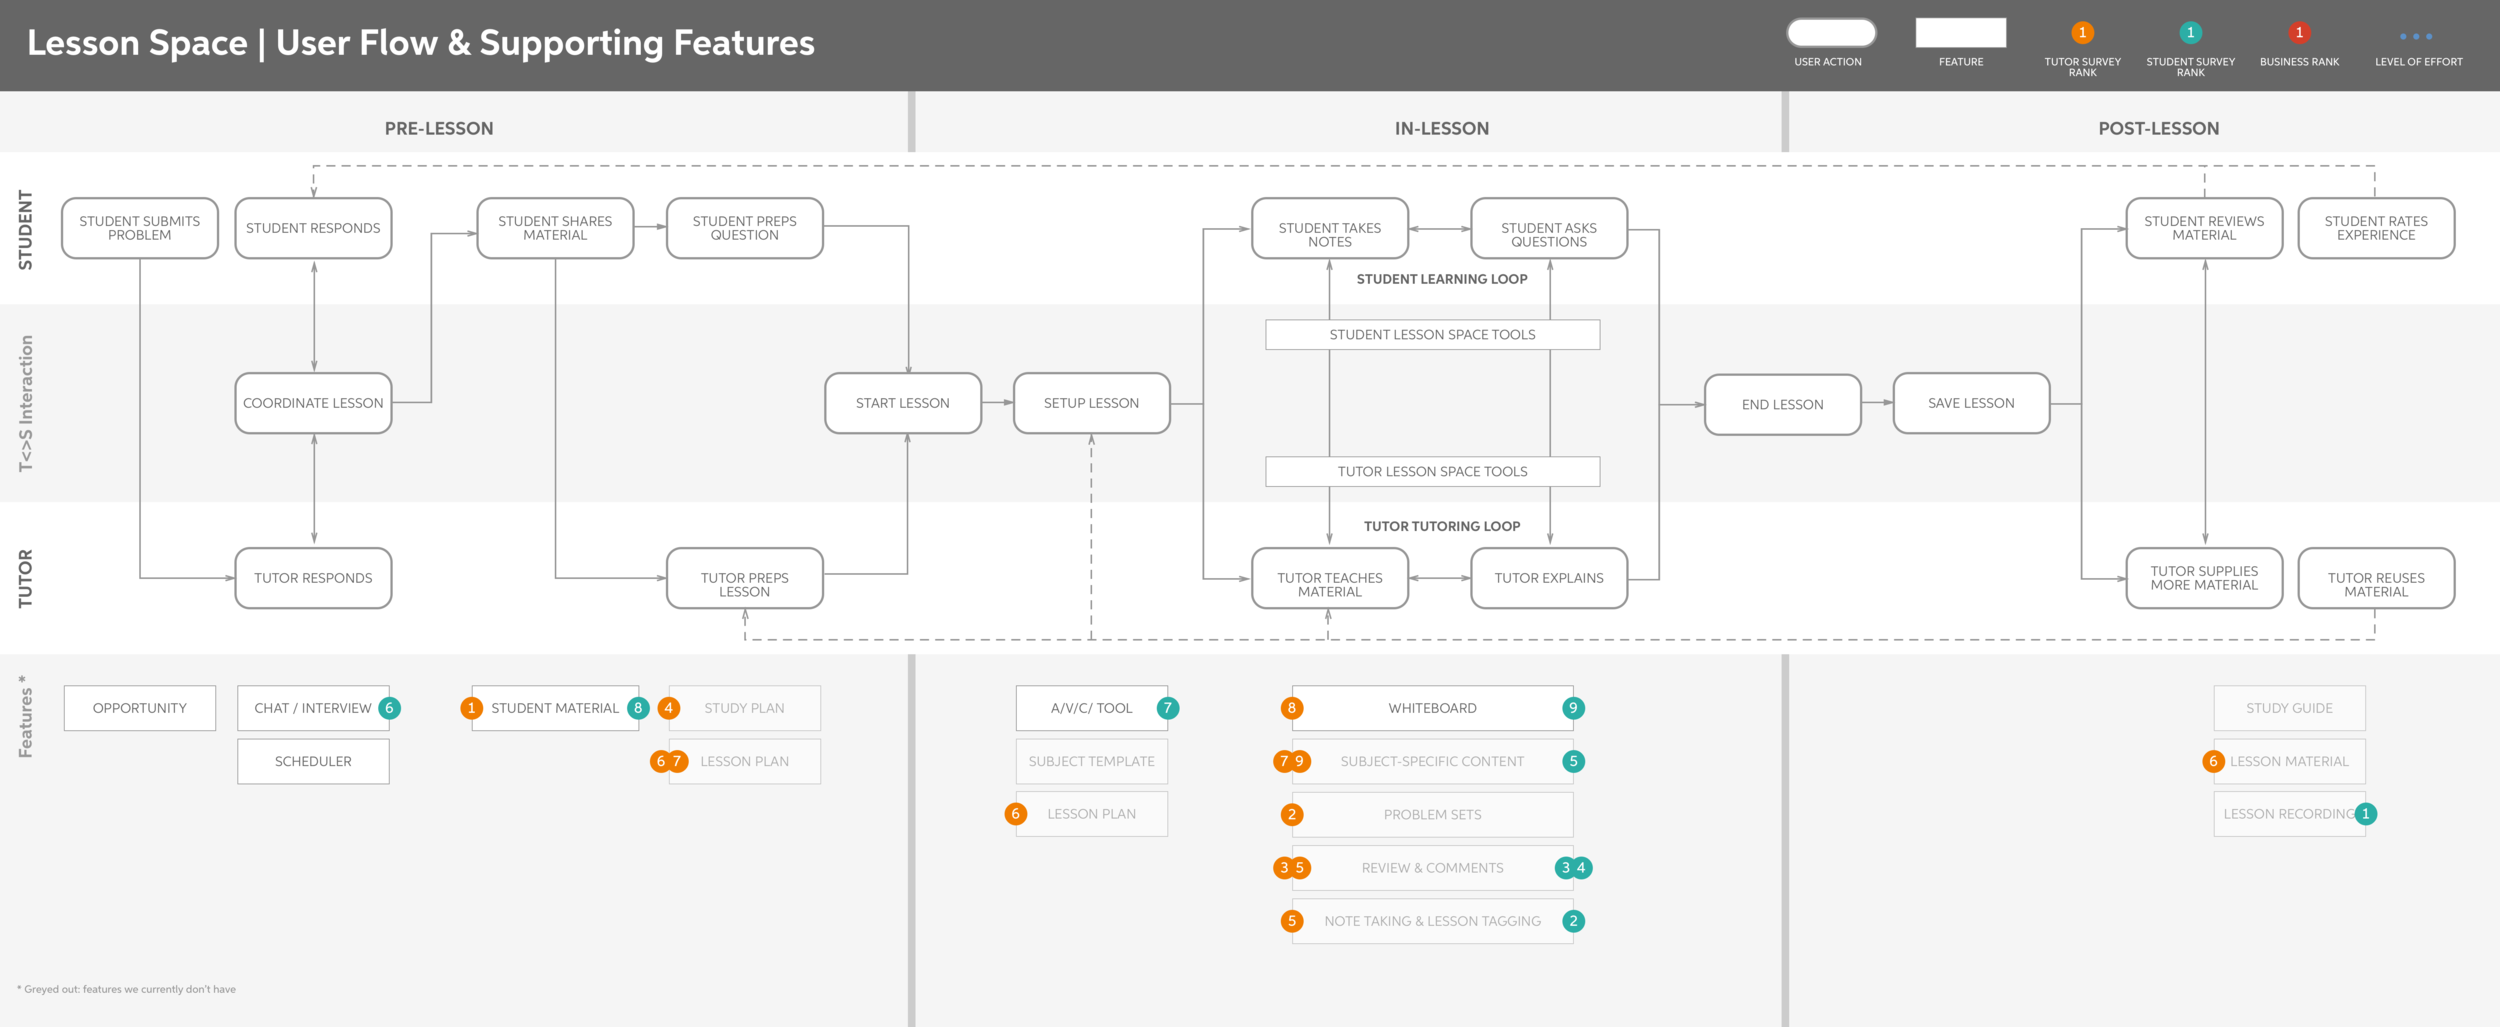 Detailed user flow for both student and tutor as well as prioritized needs from user research and what exists and does not today in the product.